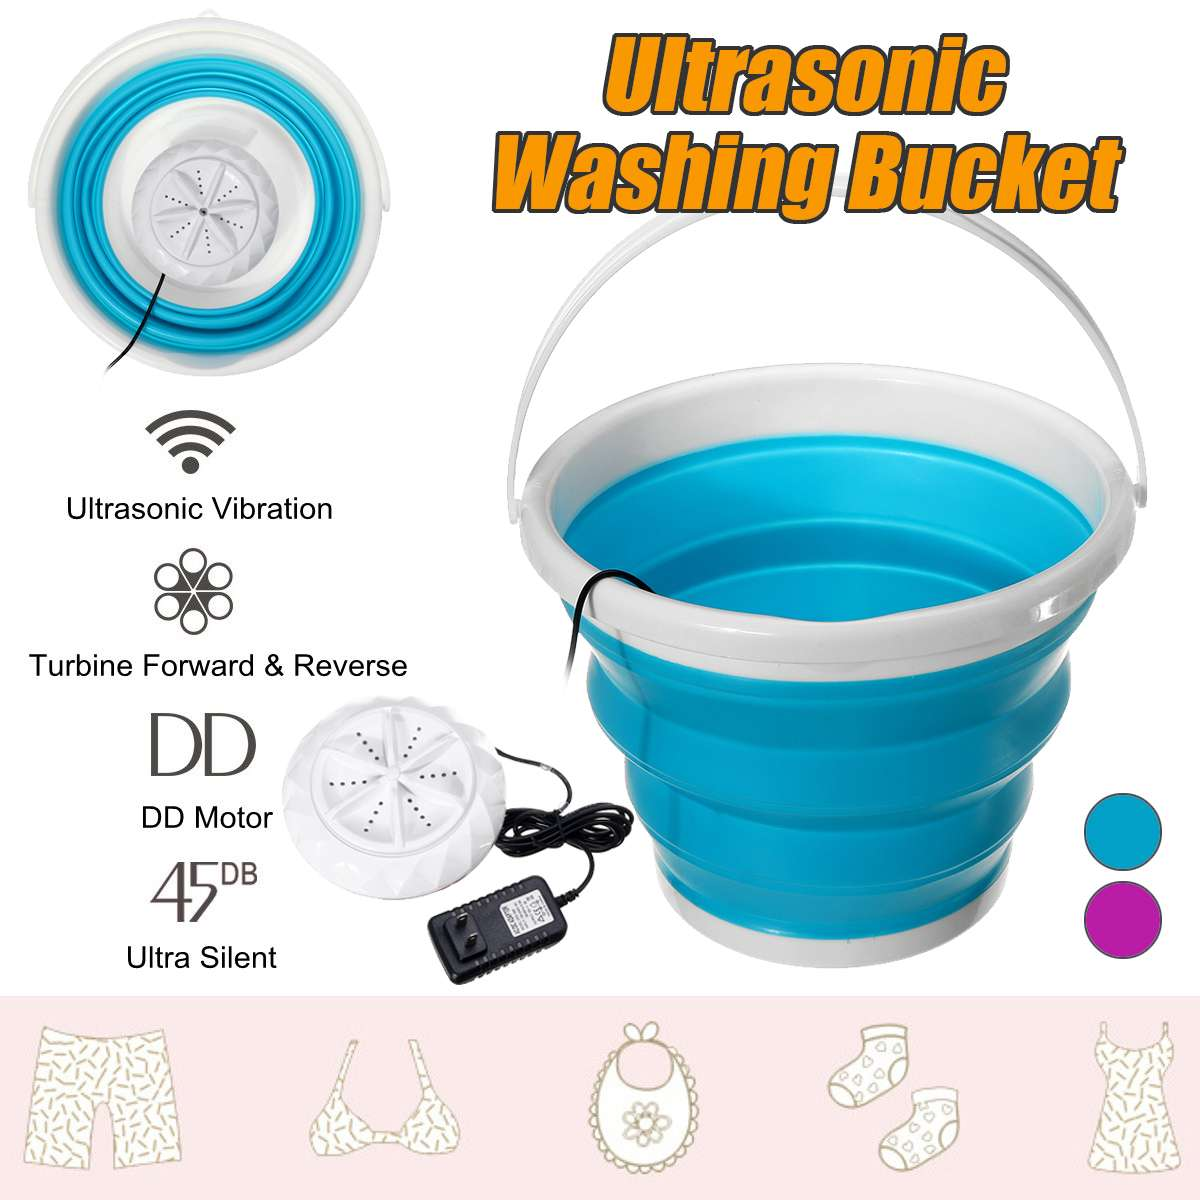 100-240v Mini Portable Ultrasonic Washing Machine Foldable Bucket Type USB Laundry Clothes Washer Cleaner For Home Travel